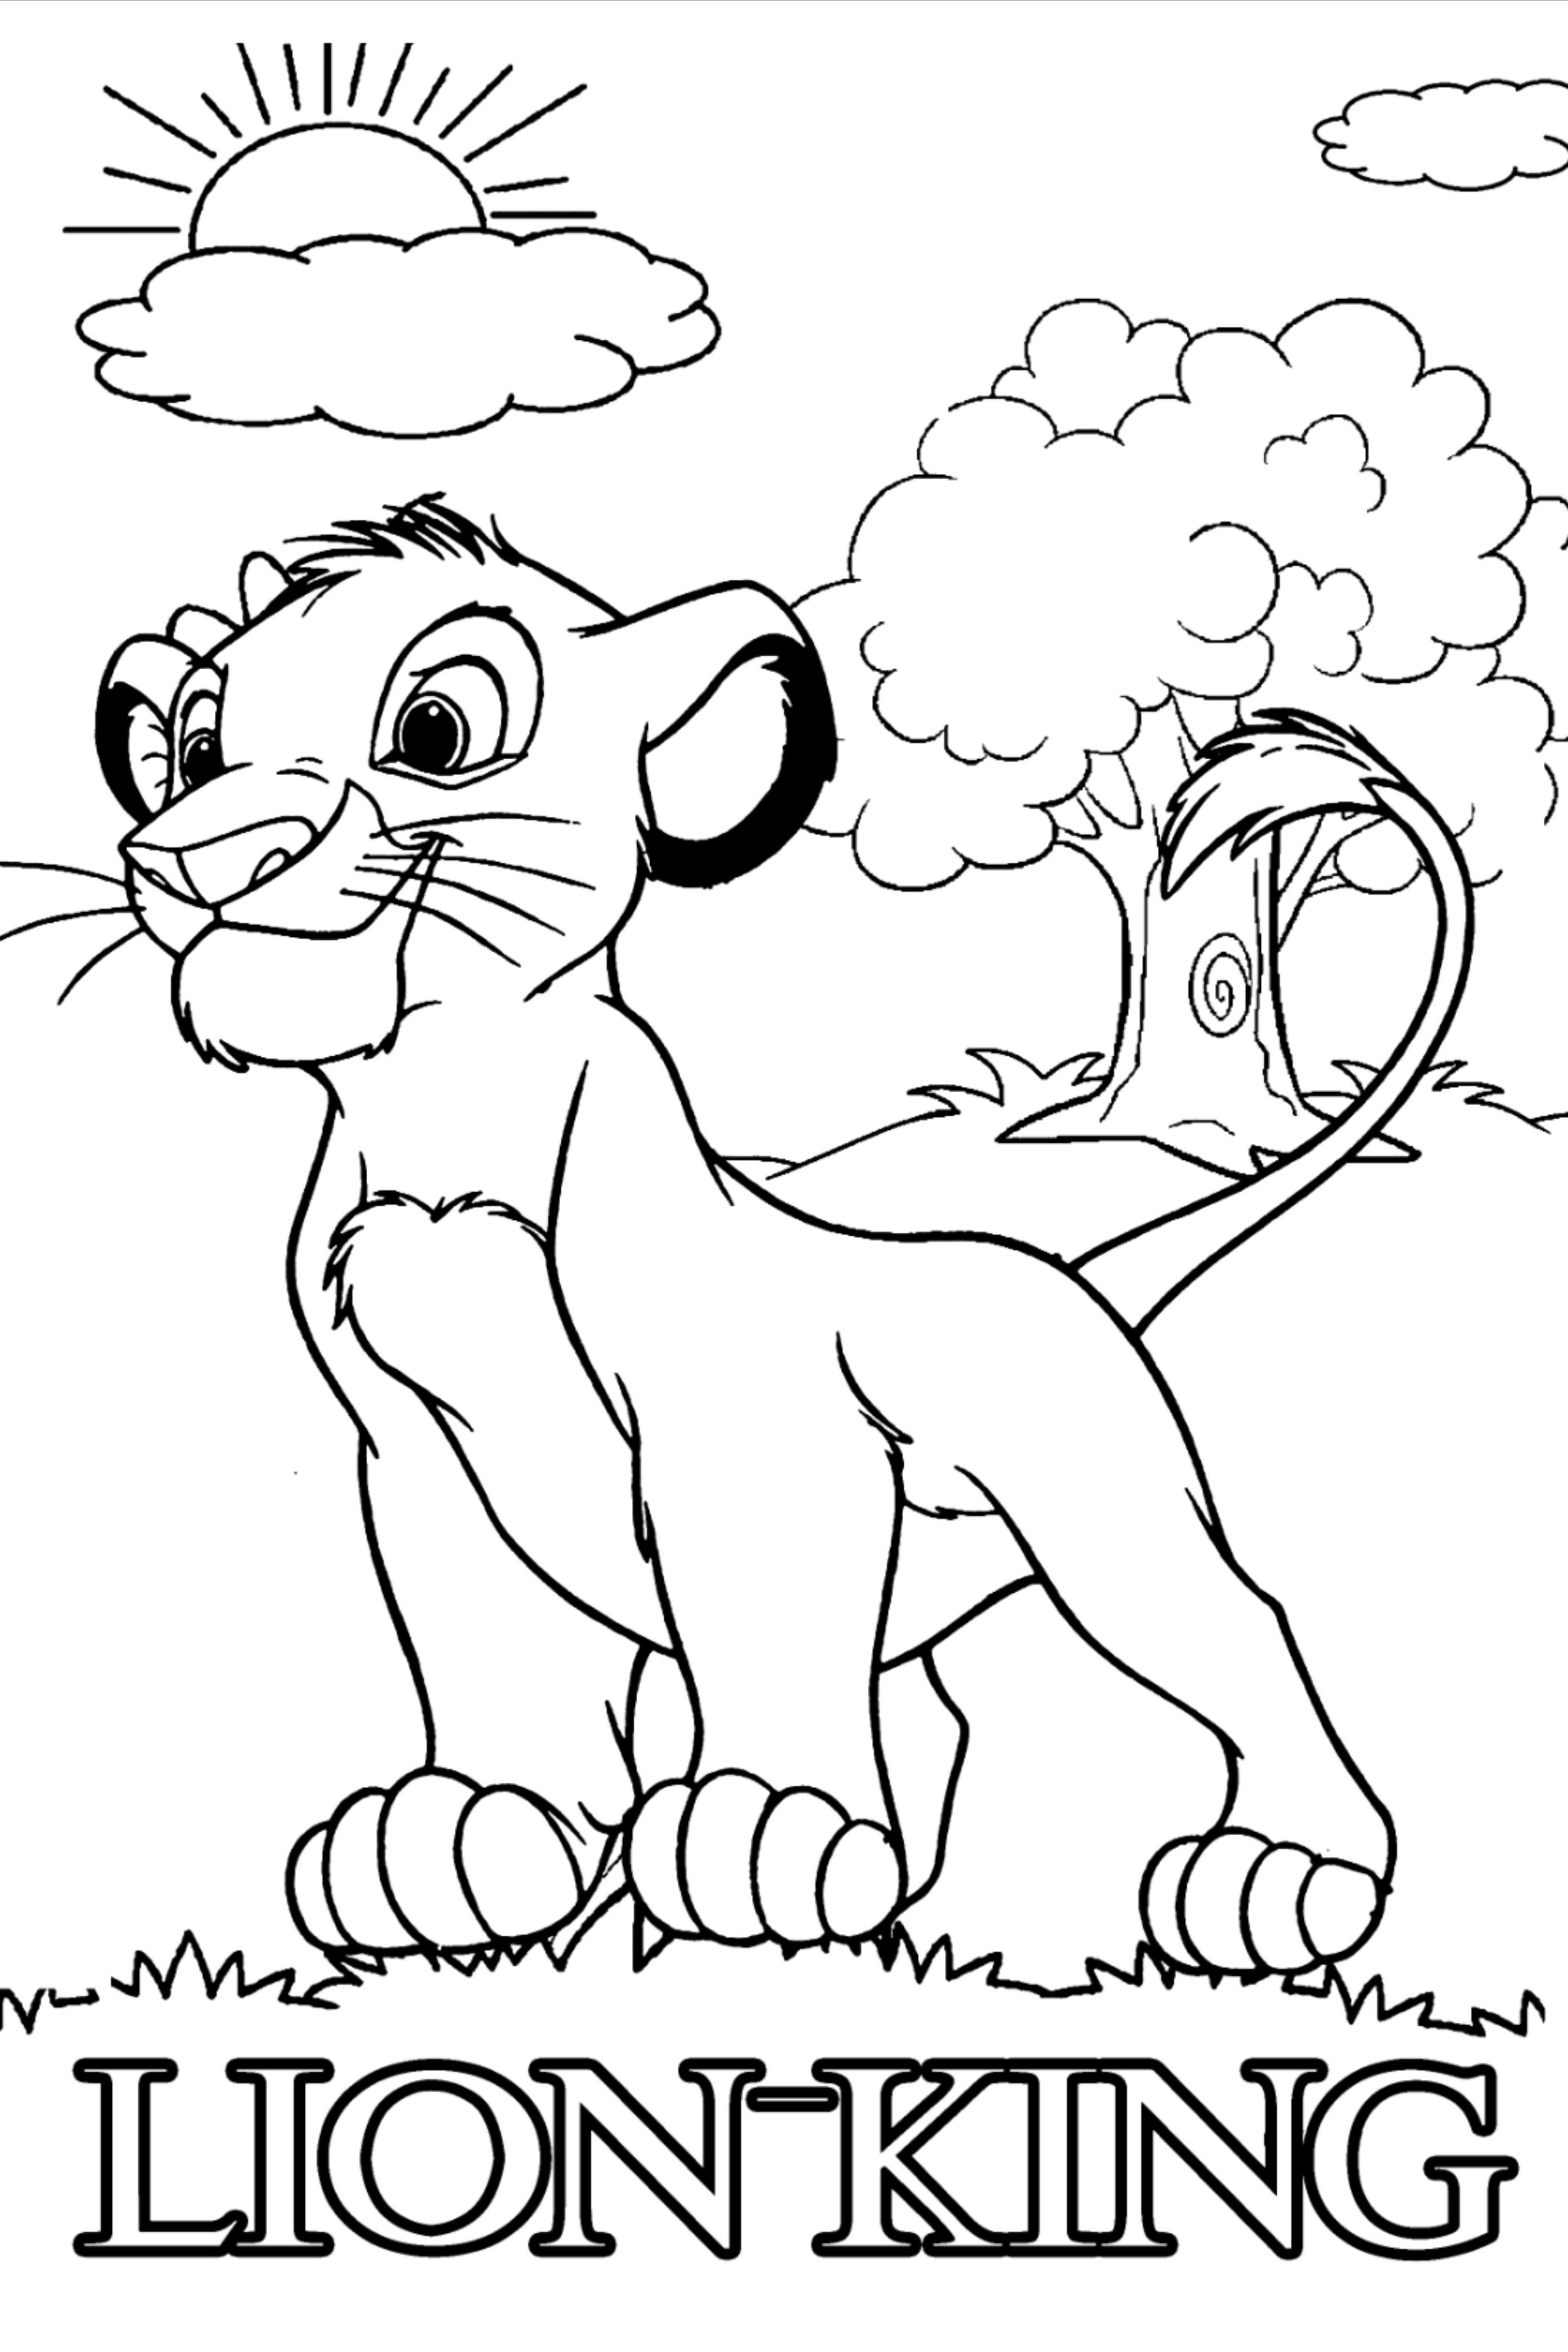 50 Lion King Coloring Pages For Kids Lion Coloring Pages King Coloring Book Cartoon Lion